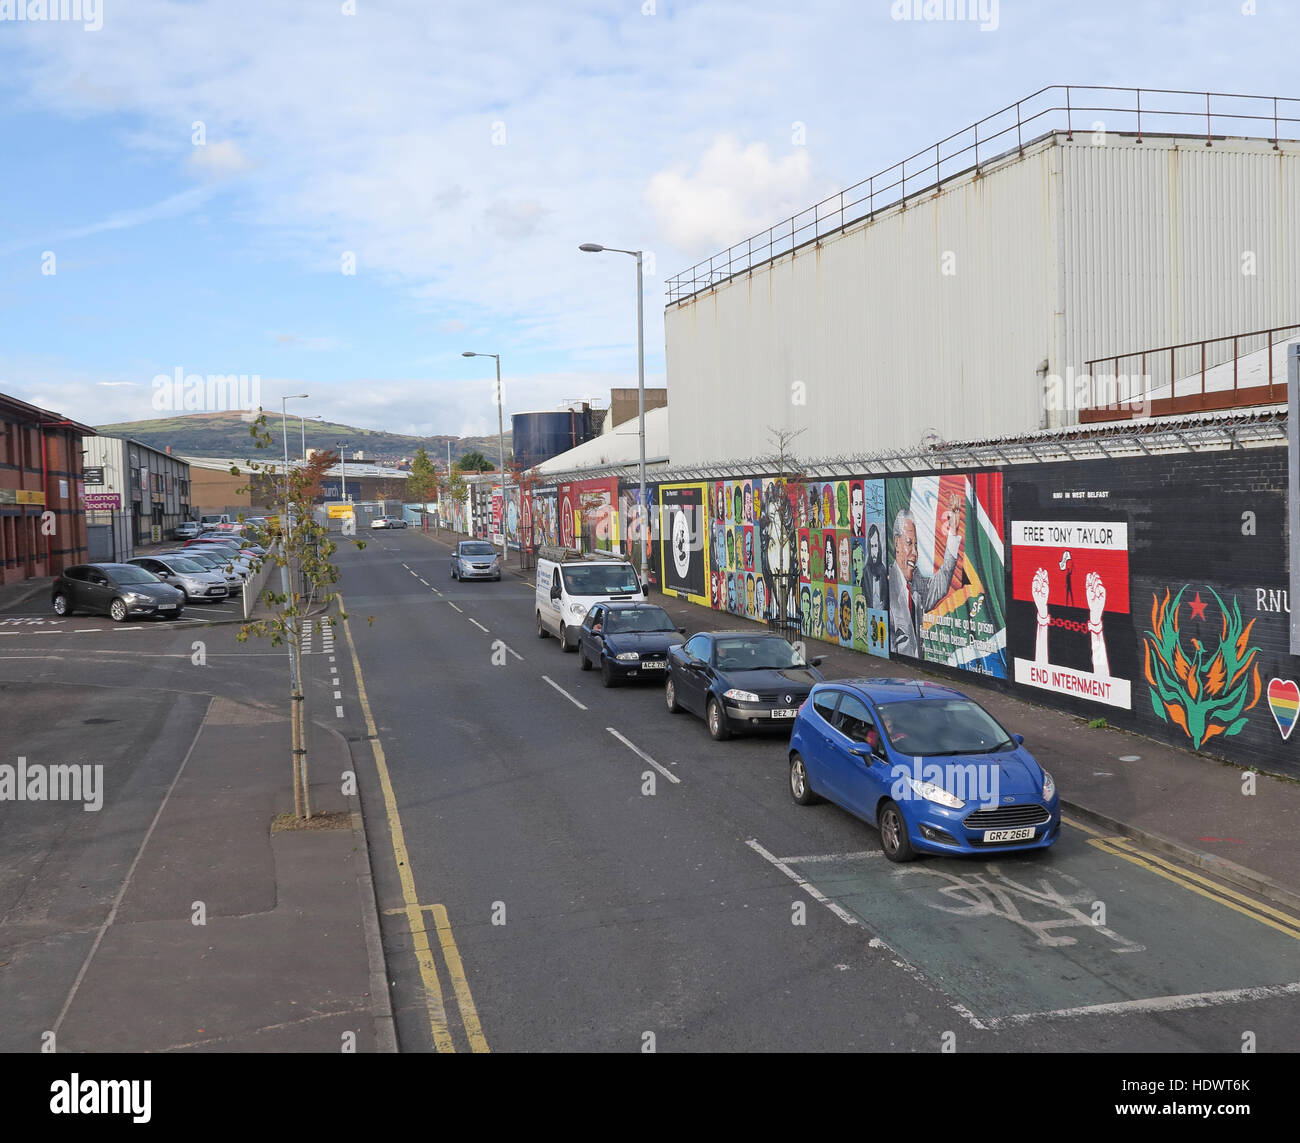 International Peace Wall, off Shankill Road/Cupar Way, West Belfast,Northern Ireland,UK - Stock Image